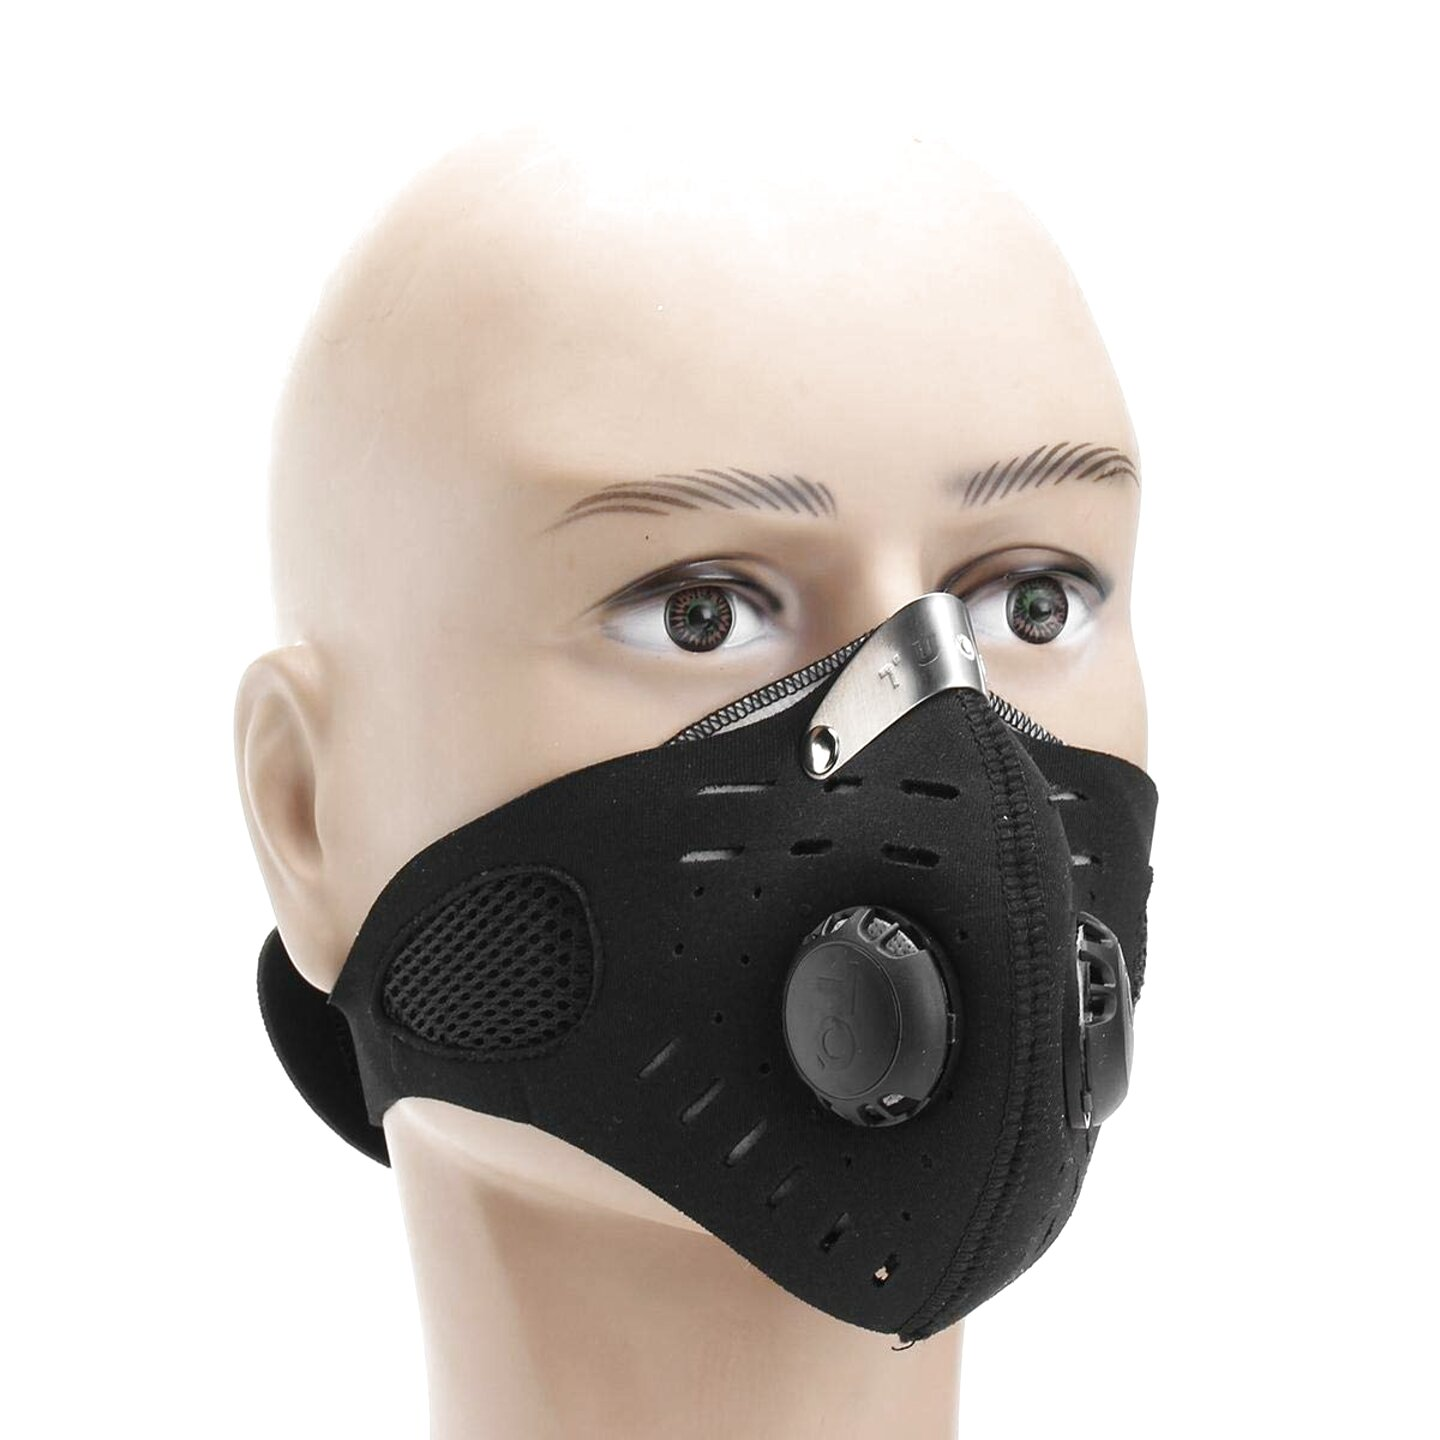 Respirator Respirator Face Mask For Sale In Uk